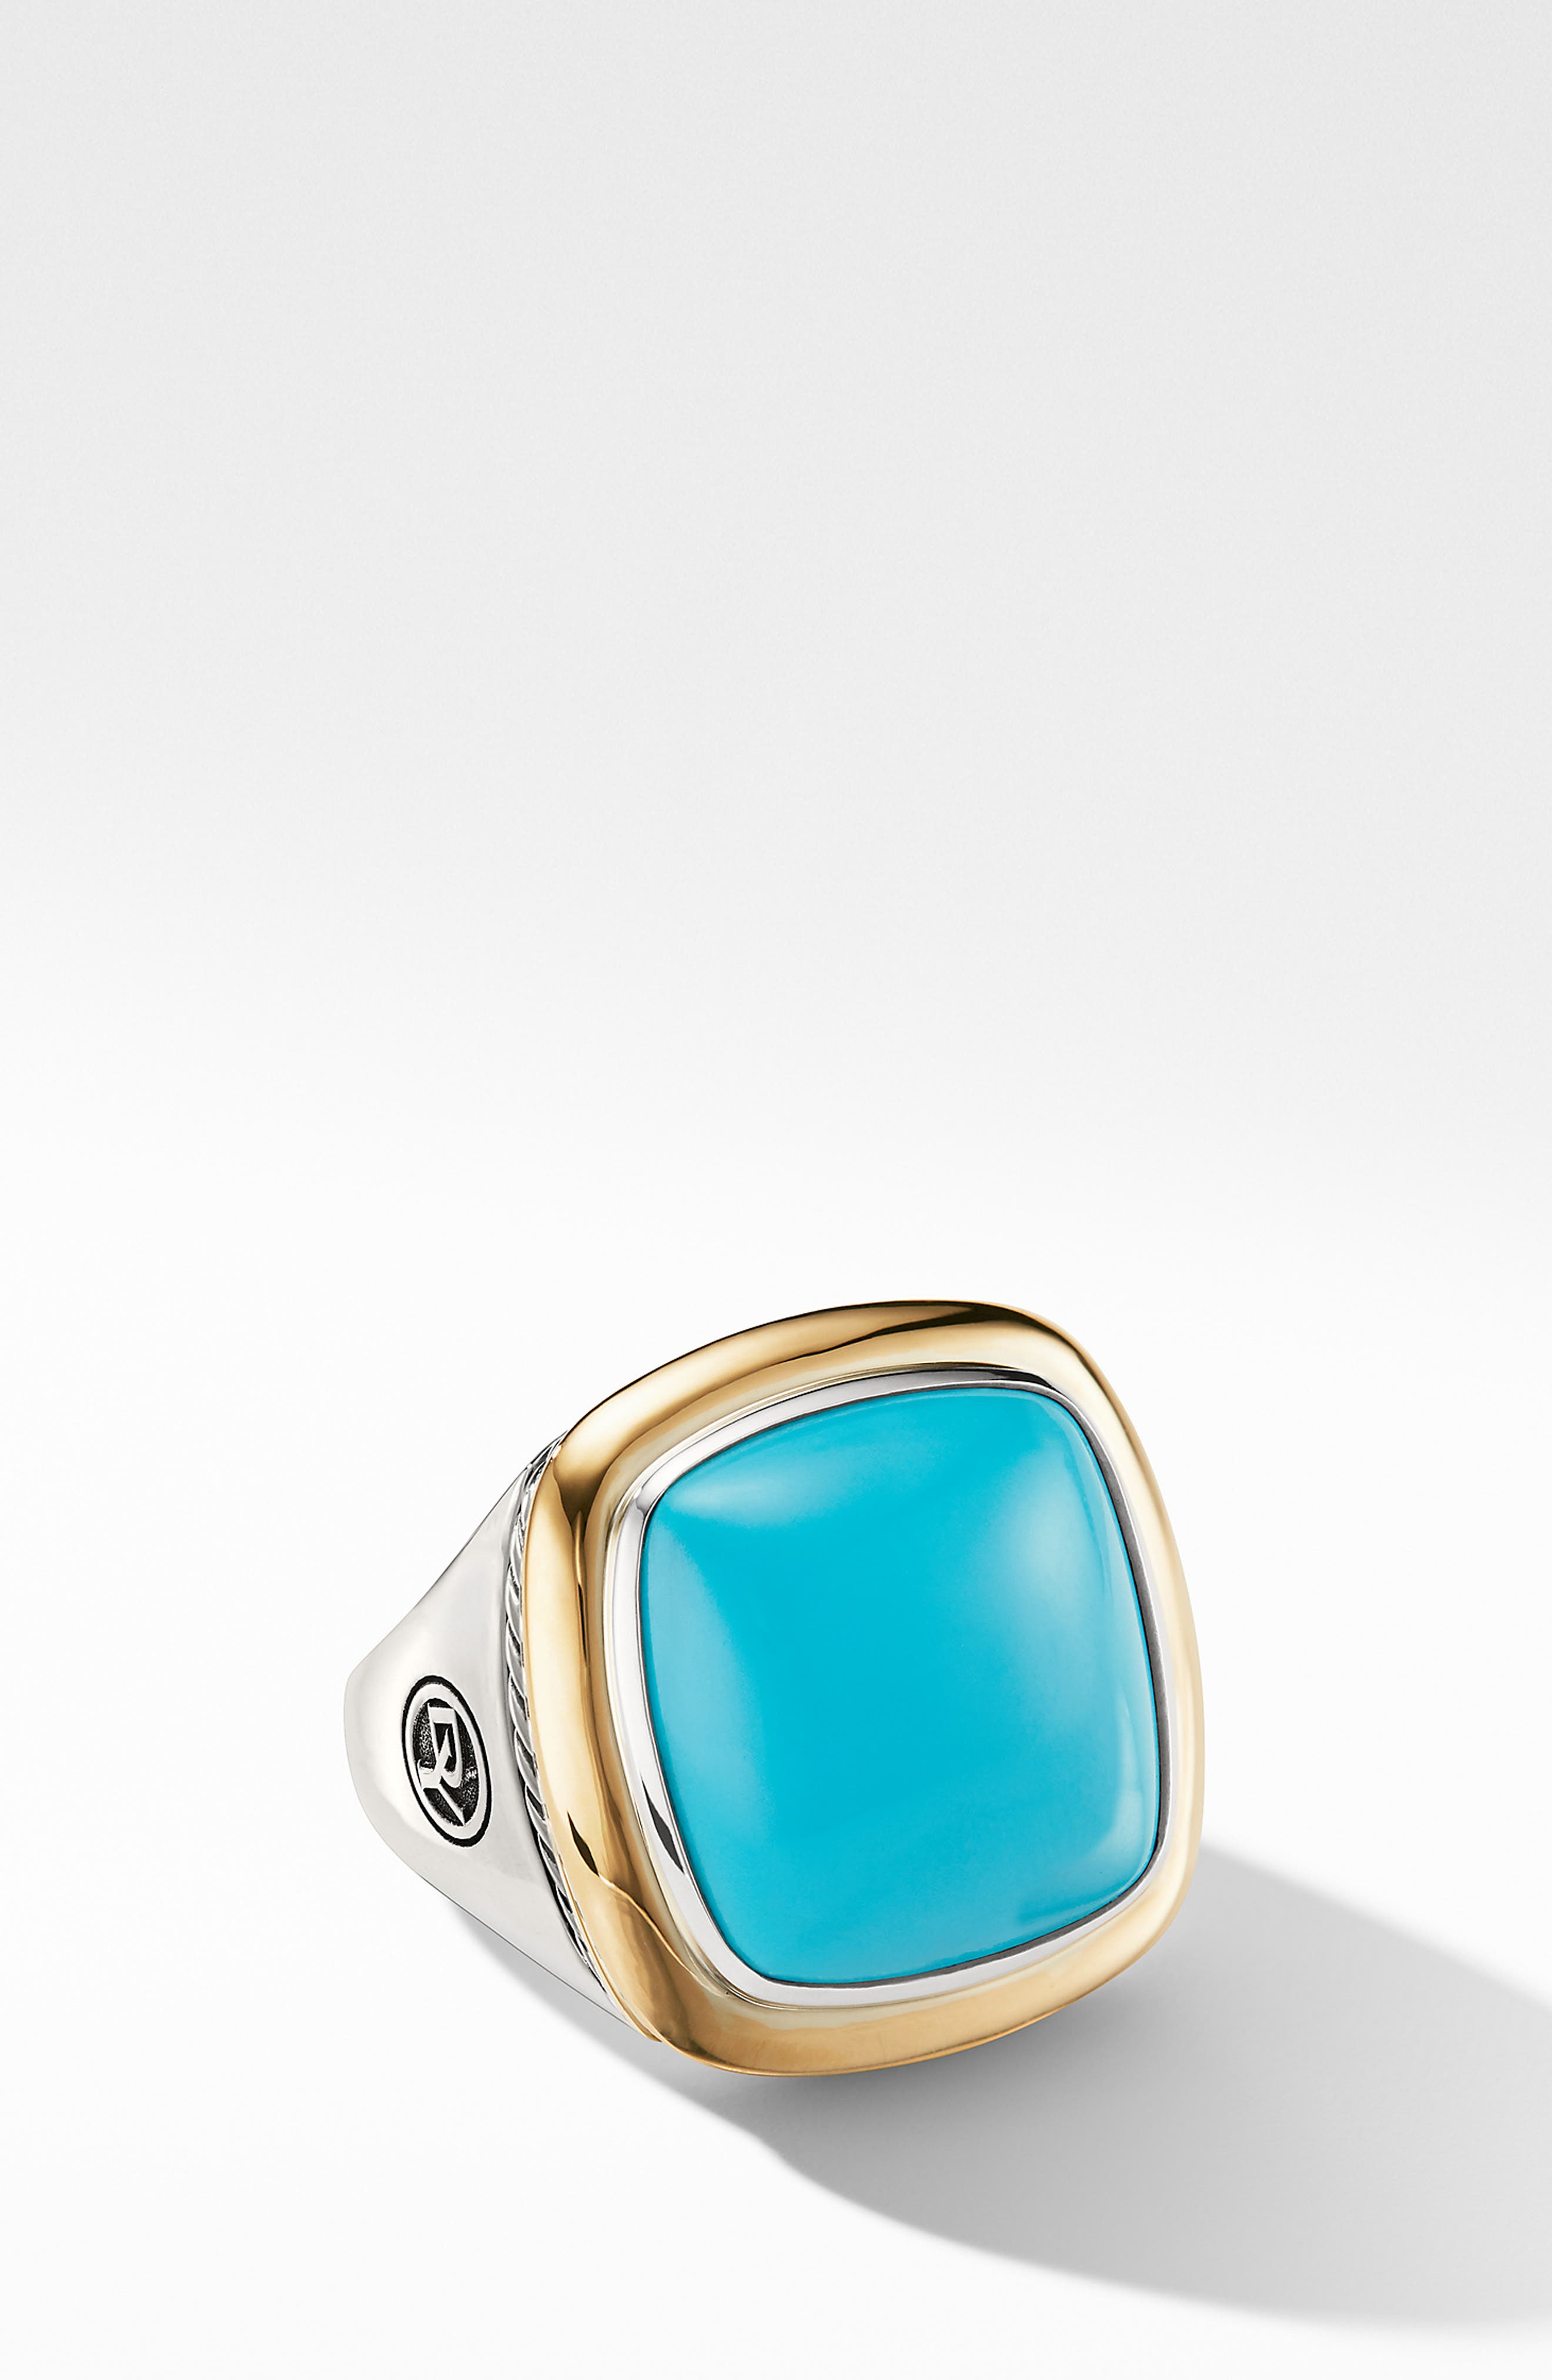 DAVID YURMAN, Albion<sup>®</sup> Statement Ring with 18K Gold and Champagne Citrine or Reconstituted Turquoise, Main thumbnail 1, color, RECONSTITUTED TURQUOISE